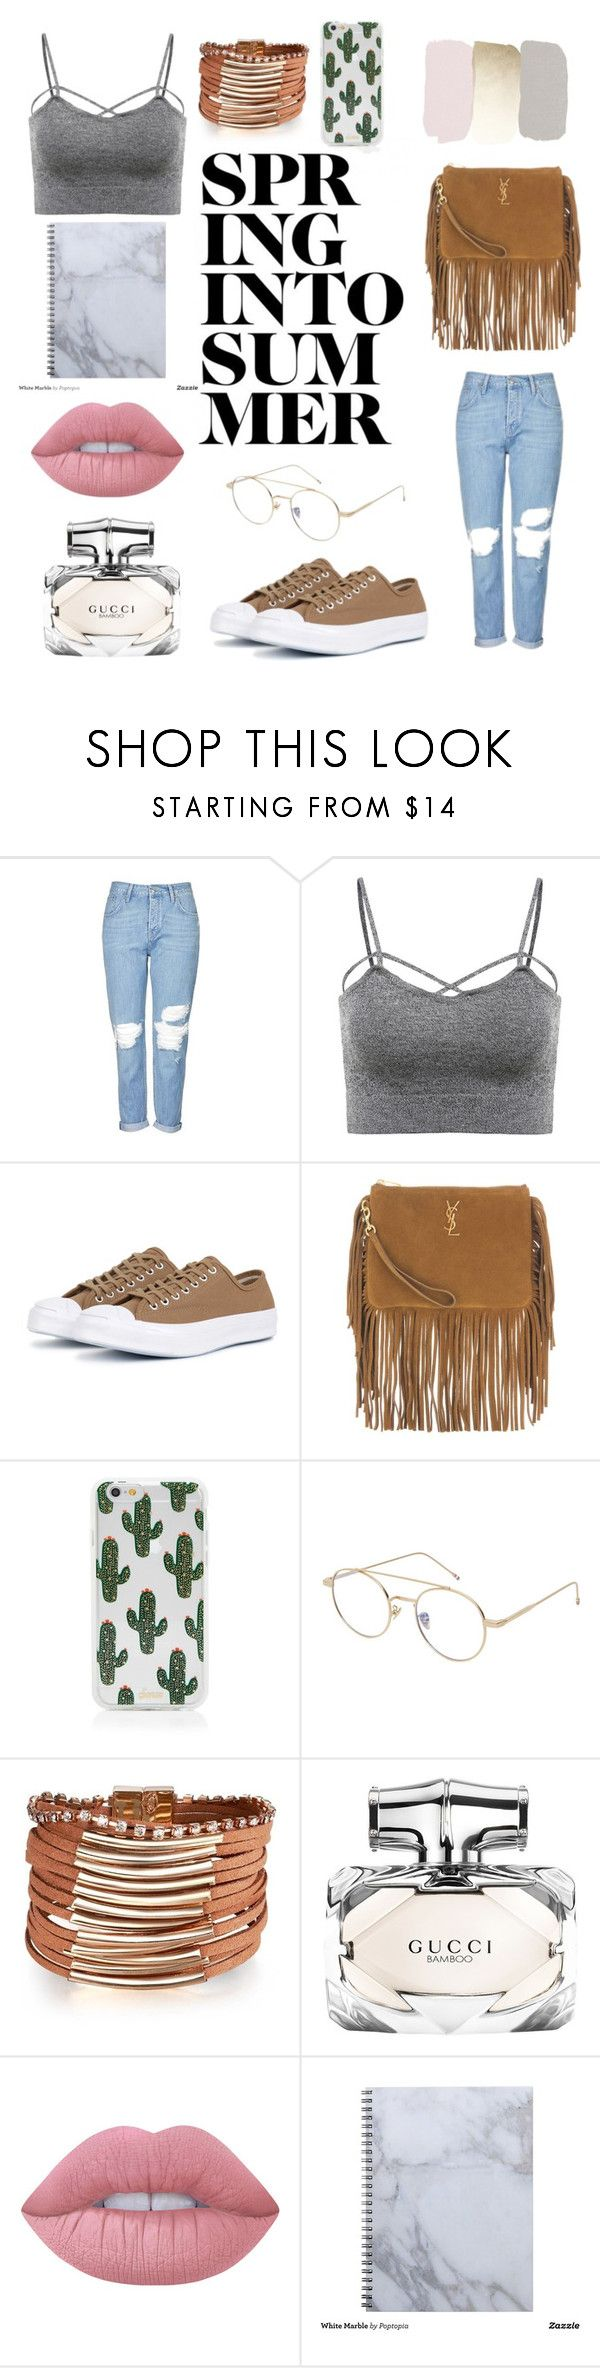 """""""Untitled #4"""" by plntx ❤ liked on Polyvore featuring Topshop, Converse, Yves Saint Laurent, Sonix, MANGO, Gucci and Lime Crime"""